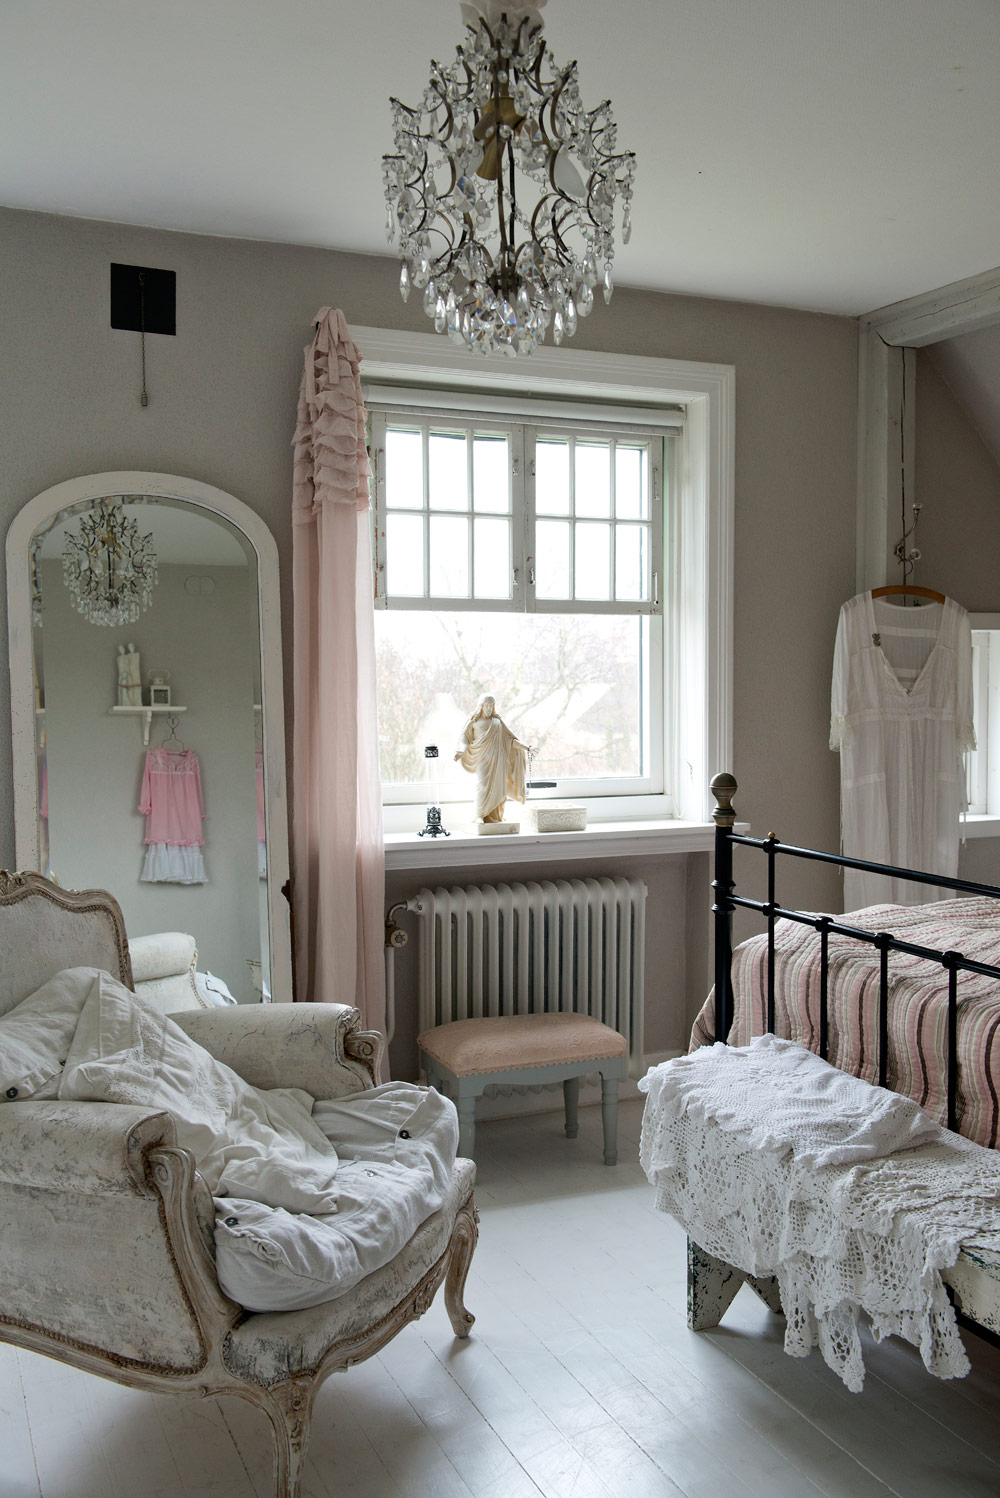 Gin design room shabby chic inspiration for Bedroom inspiration shabby chic